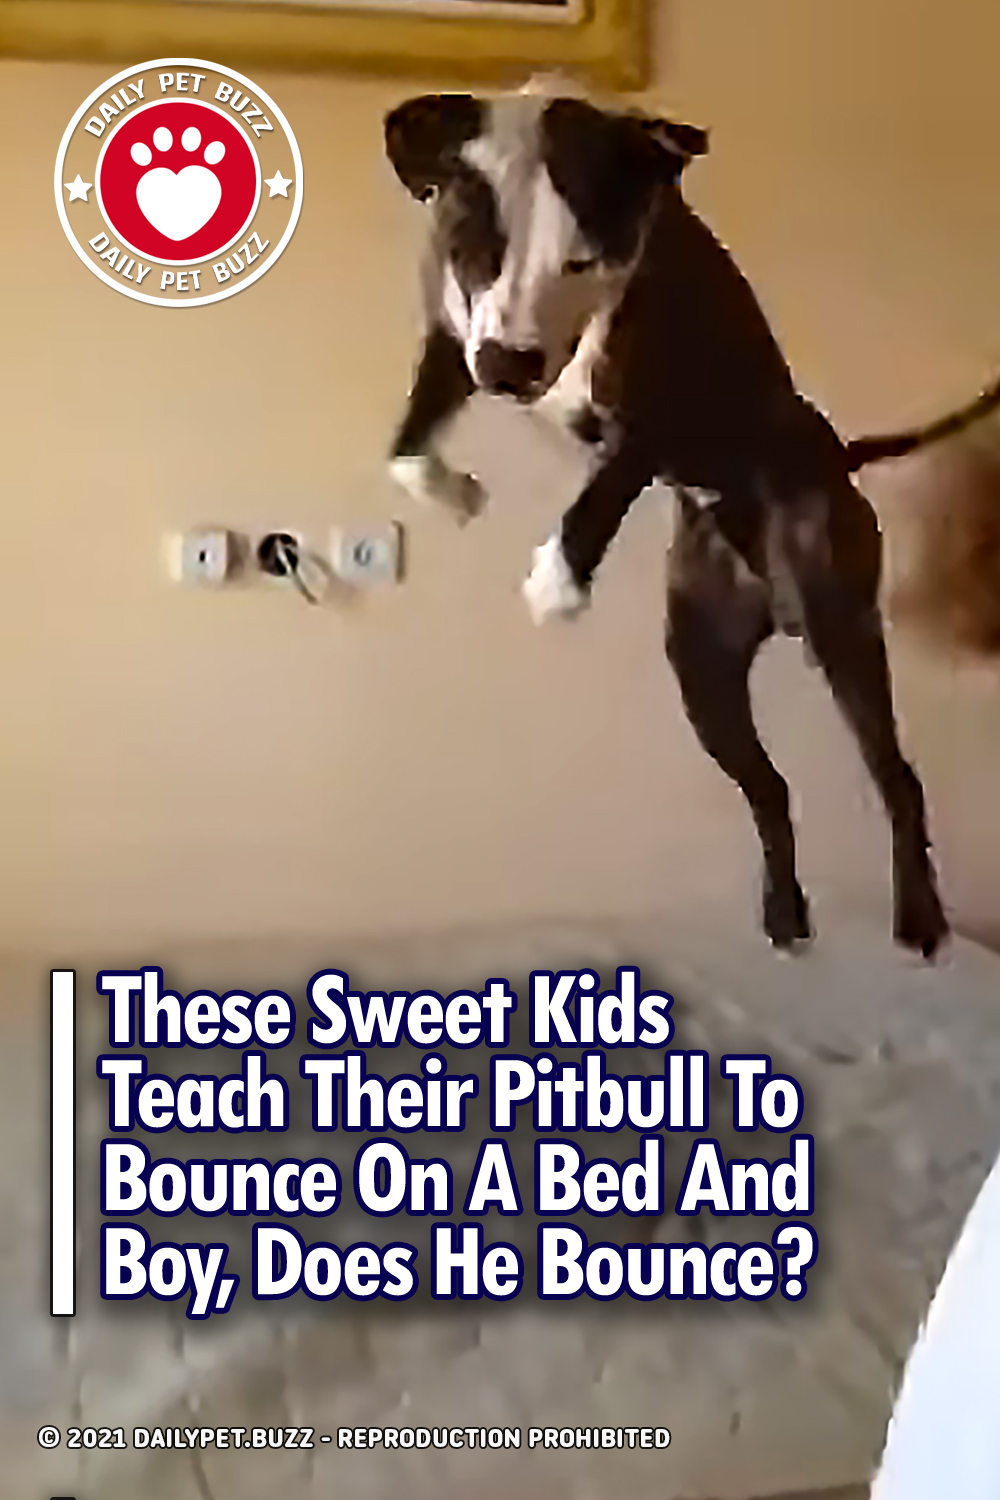 These Sweet Kids Teach Their Pitbull To Bounce On A Bed And Boy, Does He Bounce?